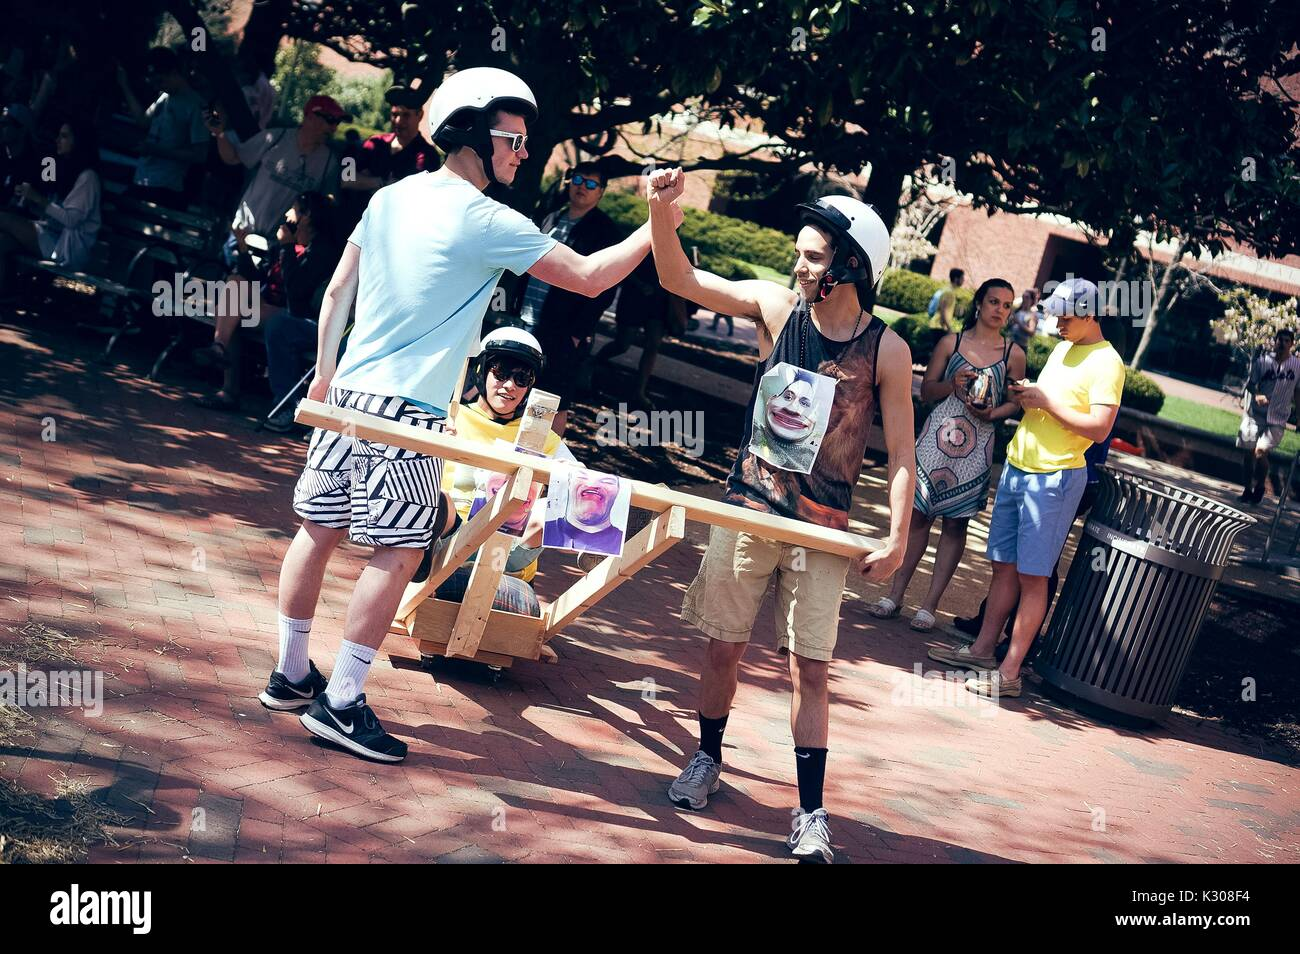 Two male students wearing white helmets throw up their hands to high-five while their teammate sits in a wooden contraption, onlookers watching from the shade, during a carnival game at Spring Fair, a student-run spring carnival at Johns Hopkins University, Baltimore, Maryland, April, 2016. Courtesy Eric Chen. - Stock Image